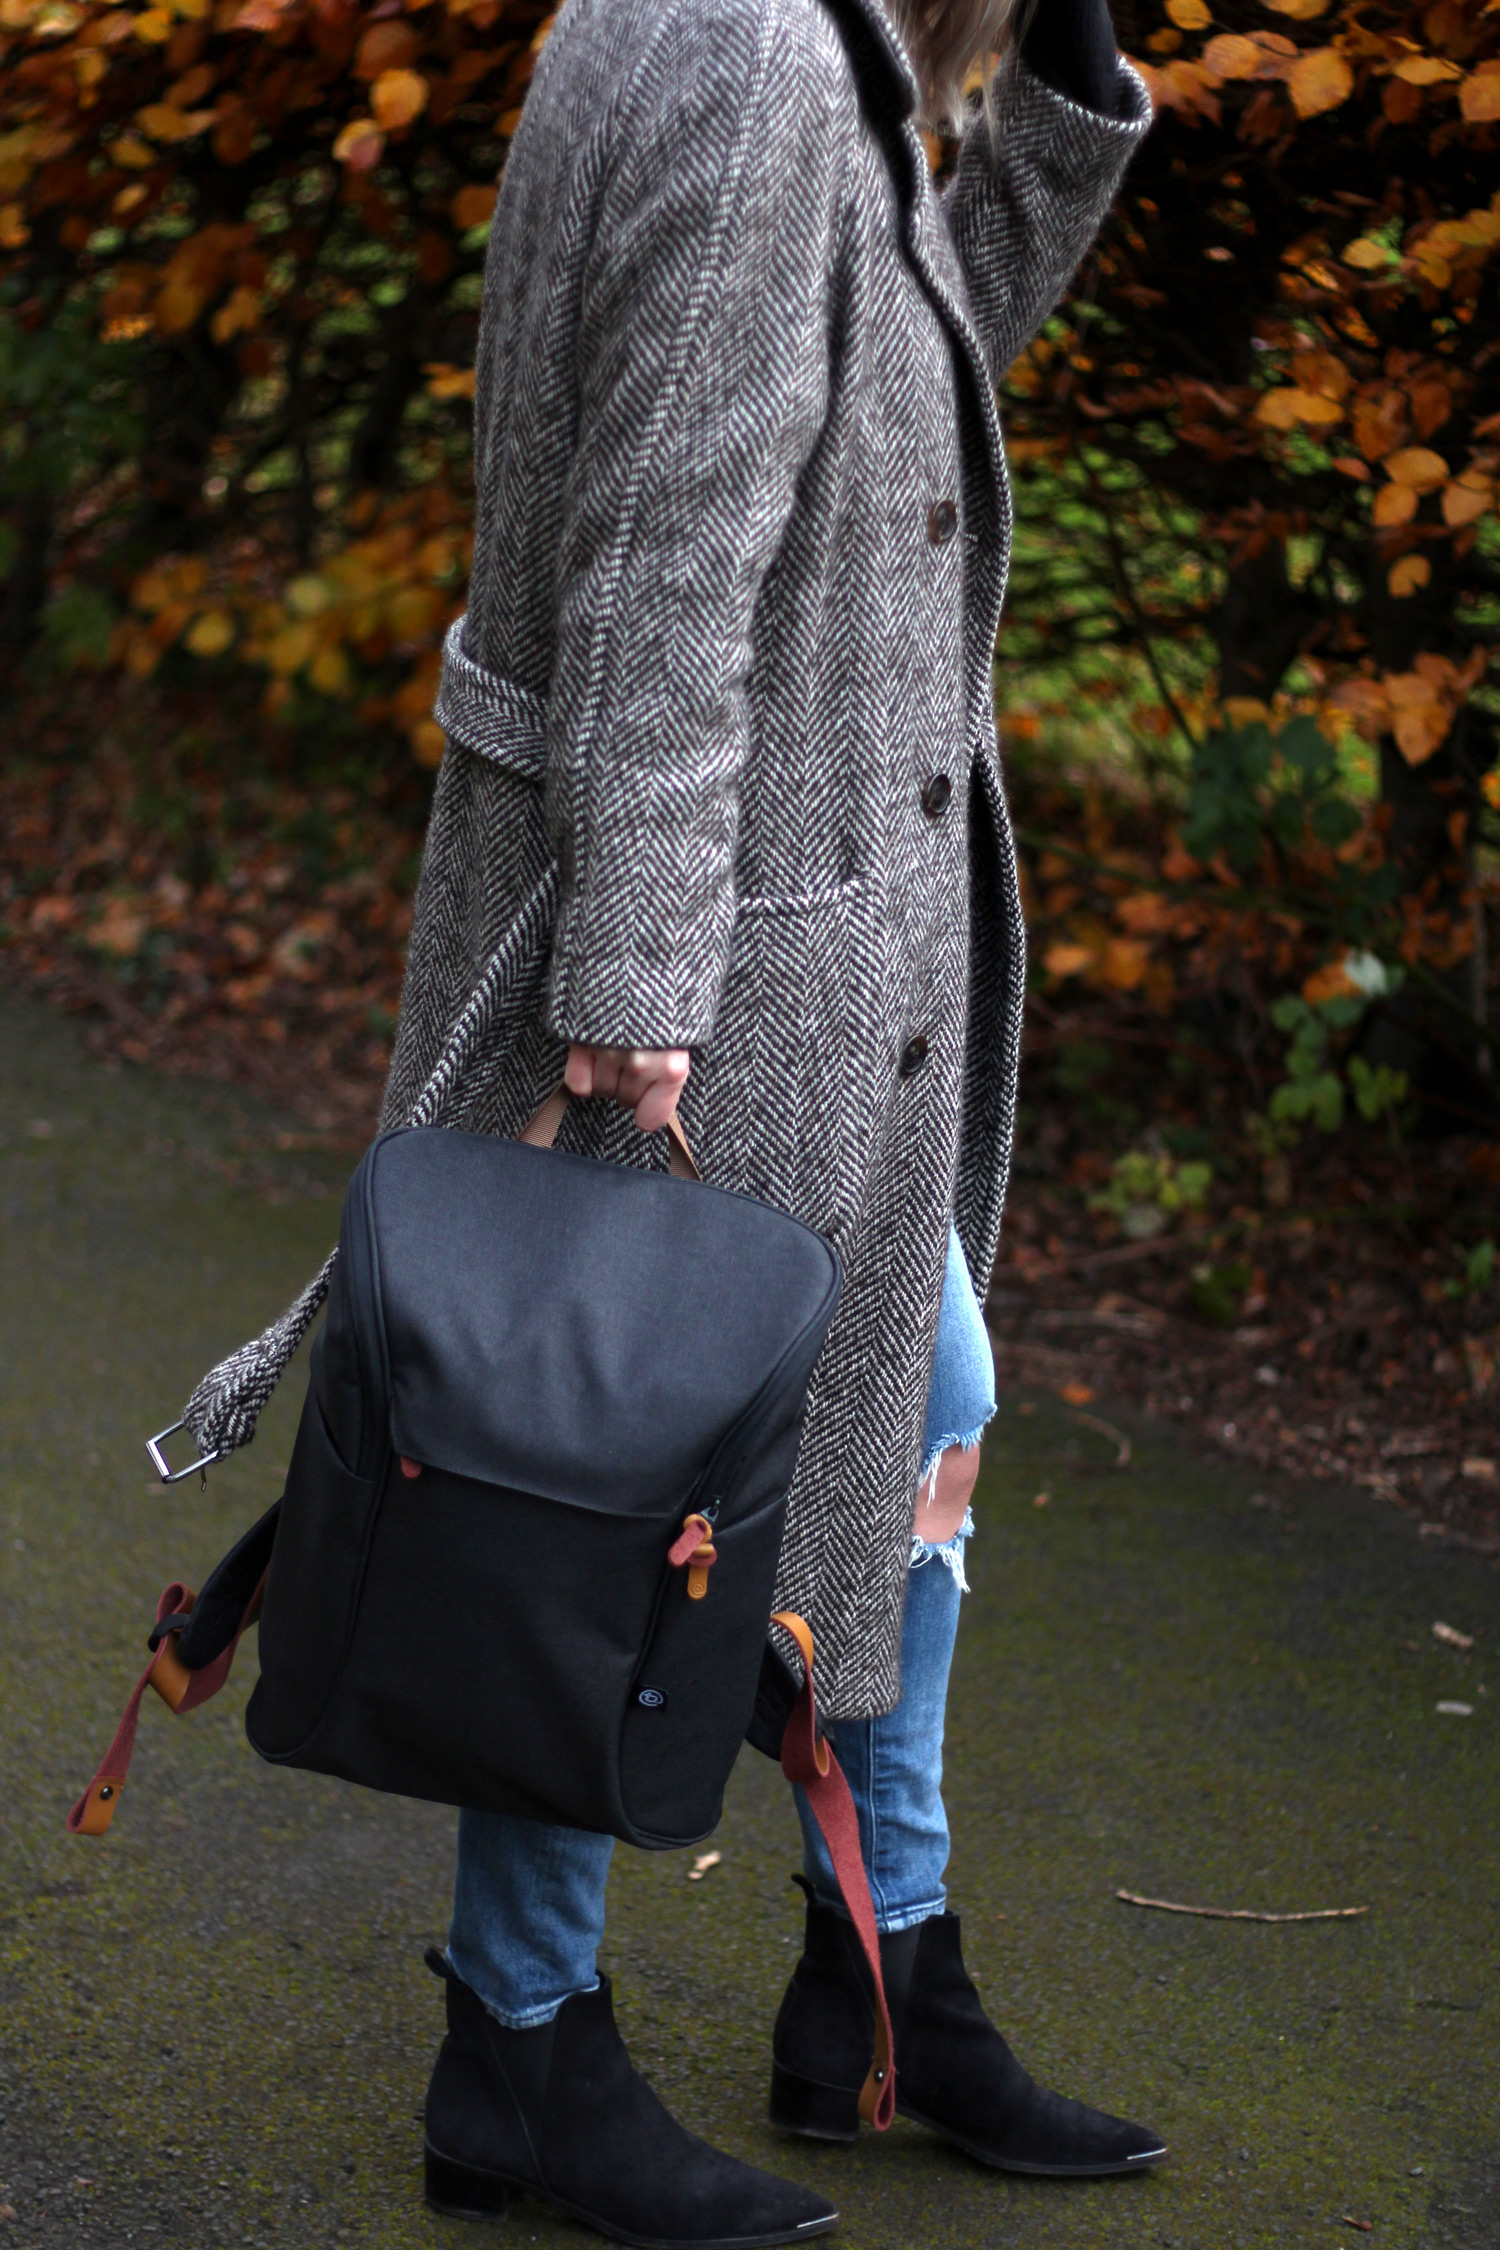 booq-grey-backpack-autumn-outfit-chloe-coat-acne-jensen-9